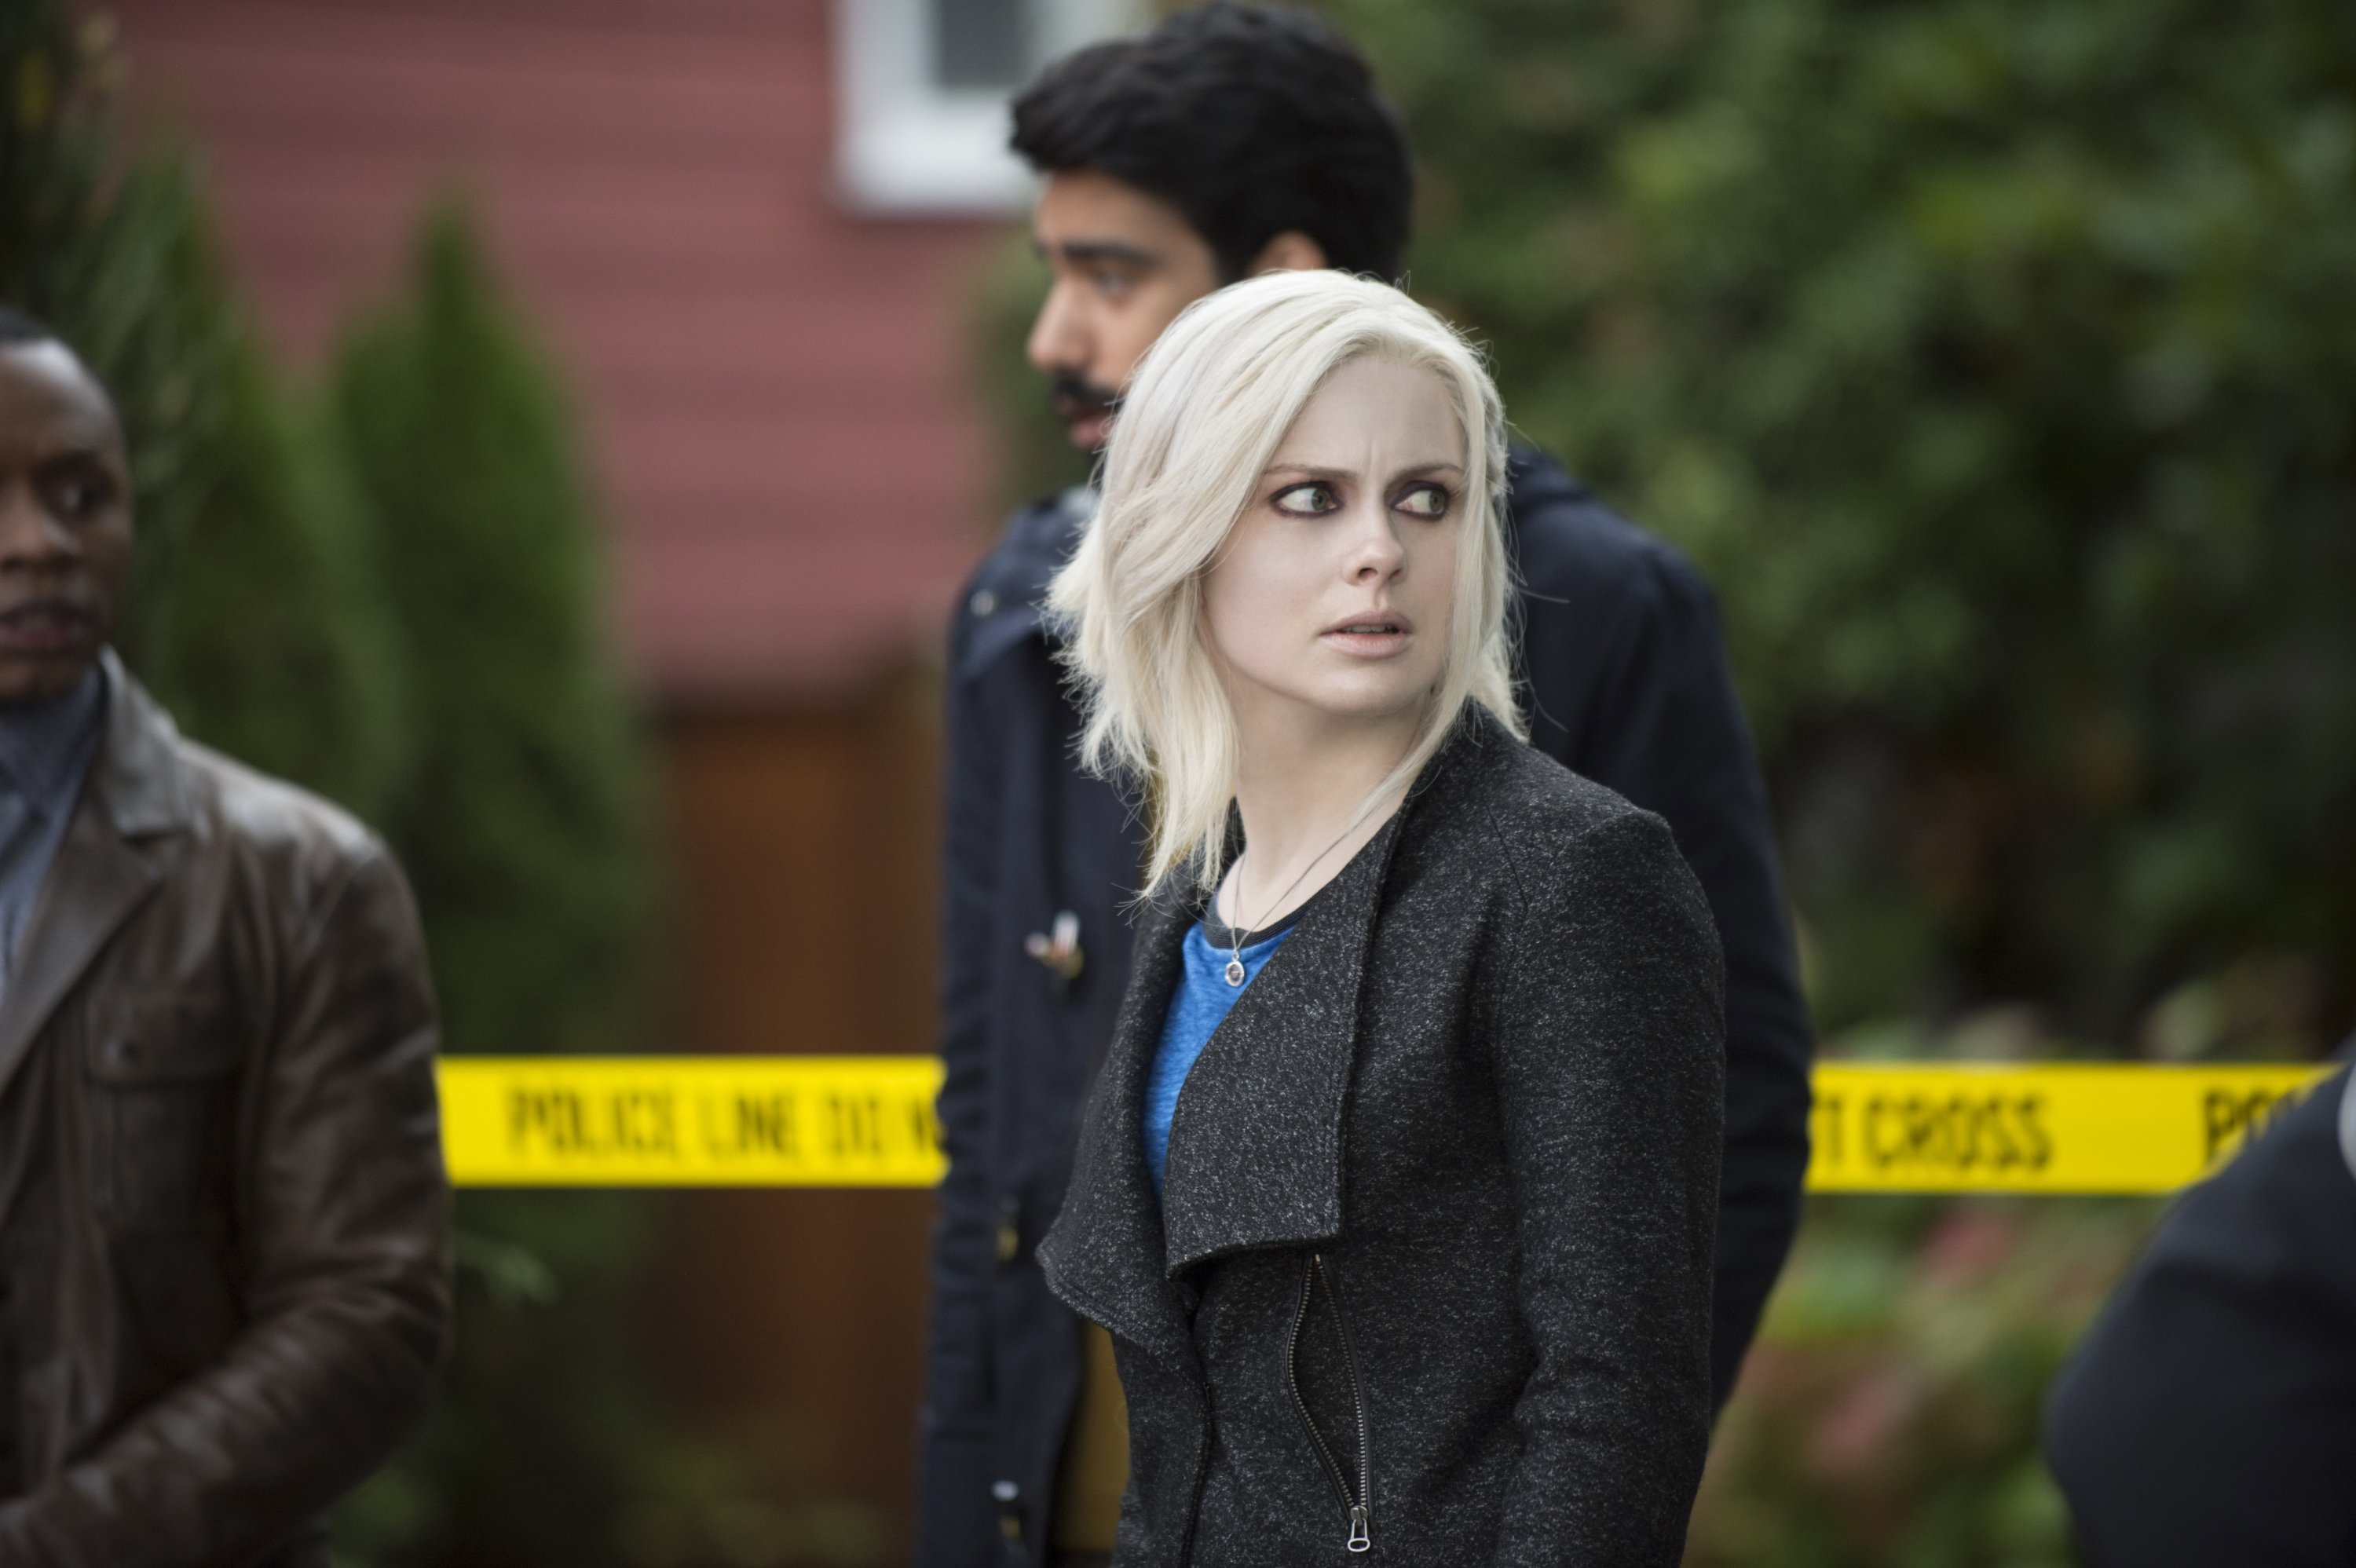 izombie full hd wallpaper and background image | 3000x1997 | id:651503